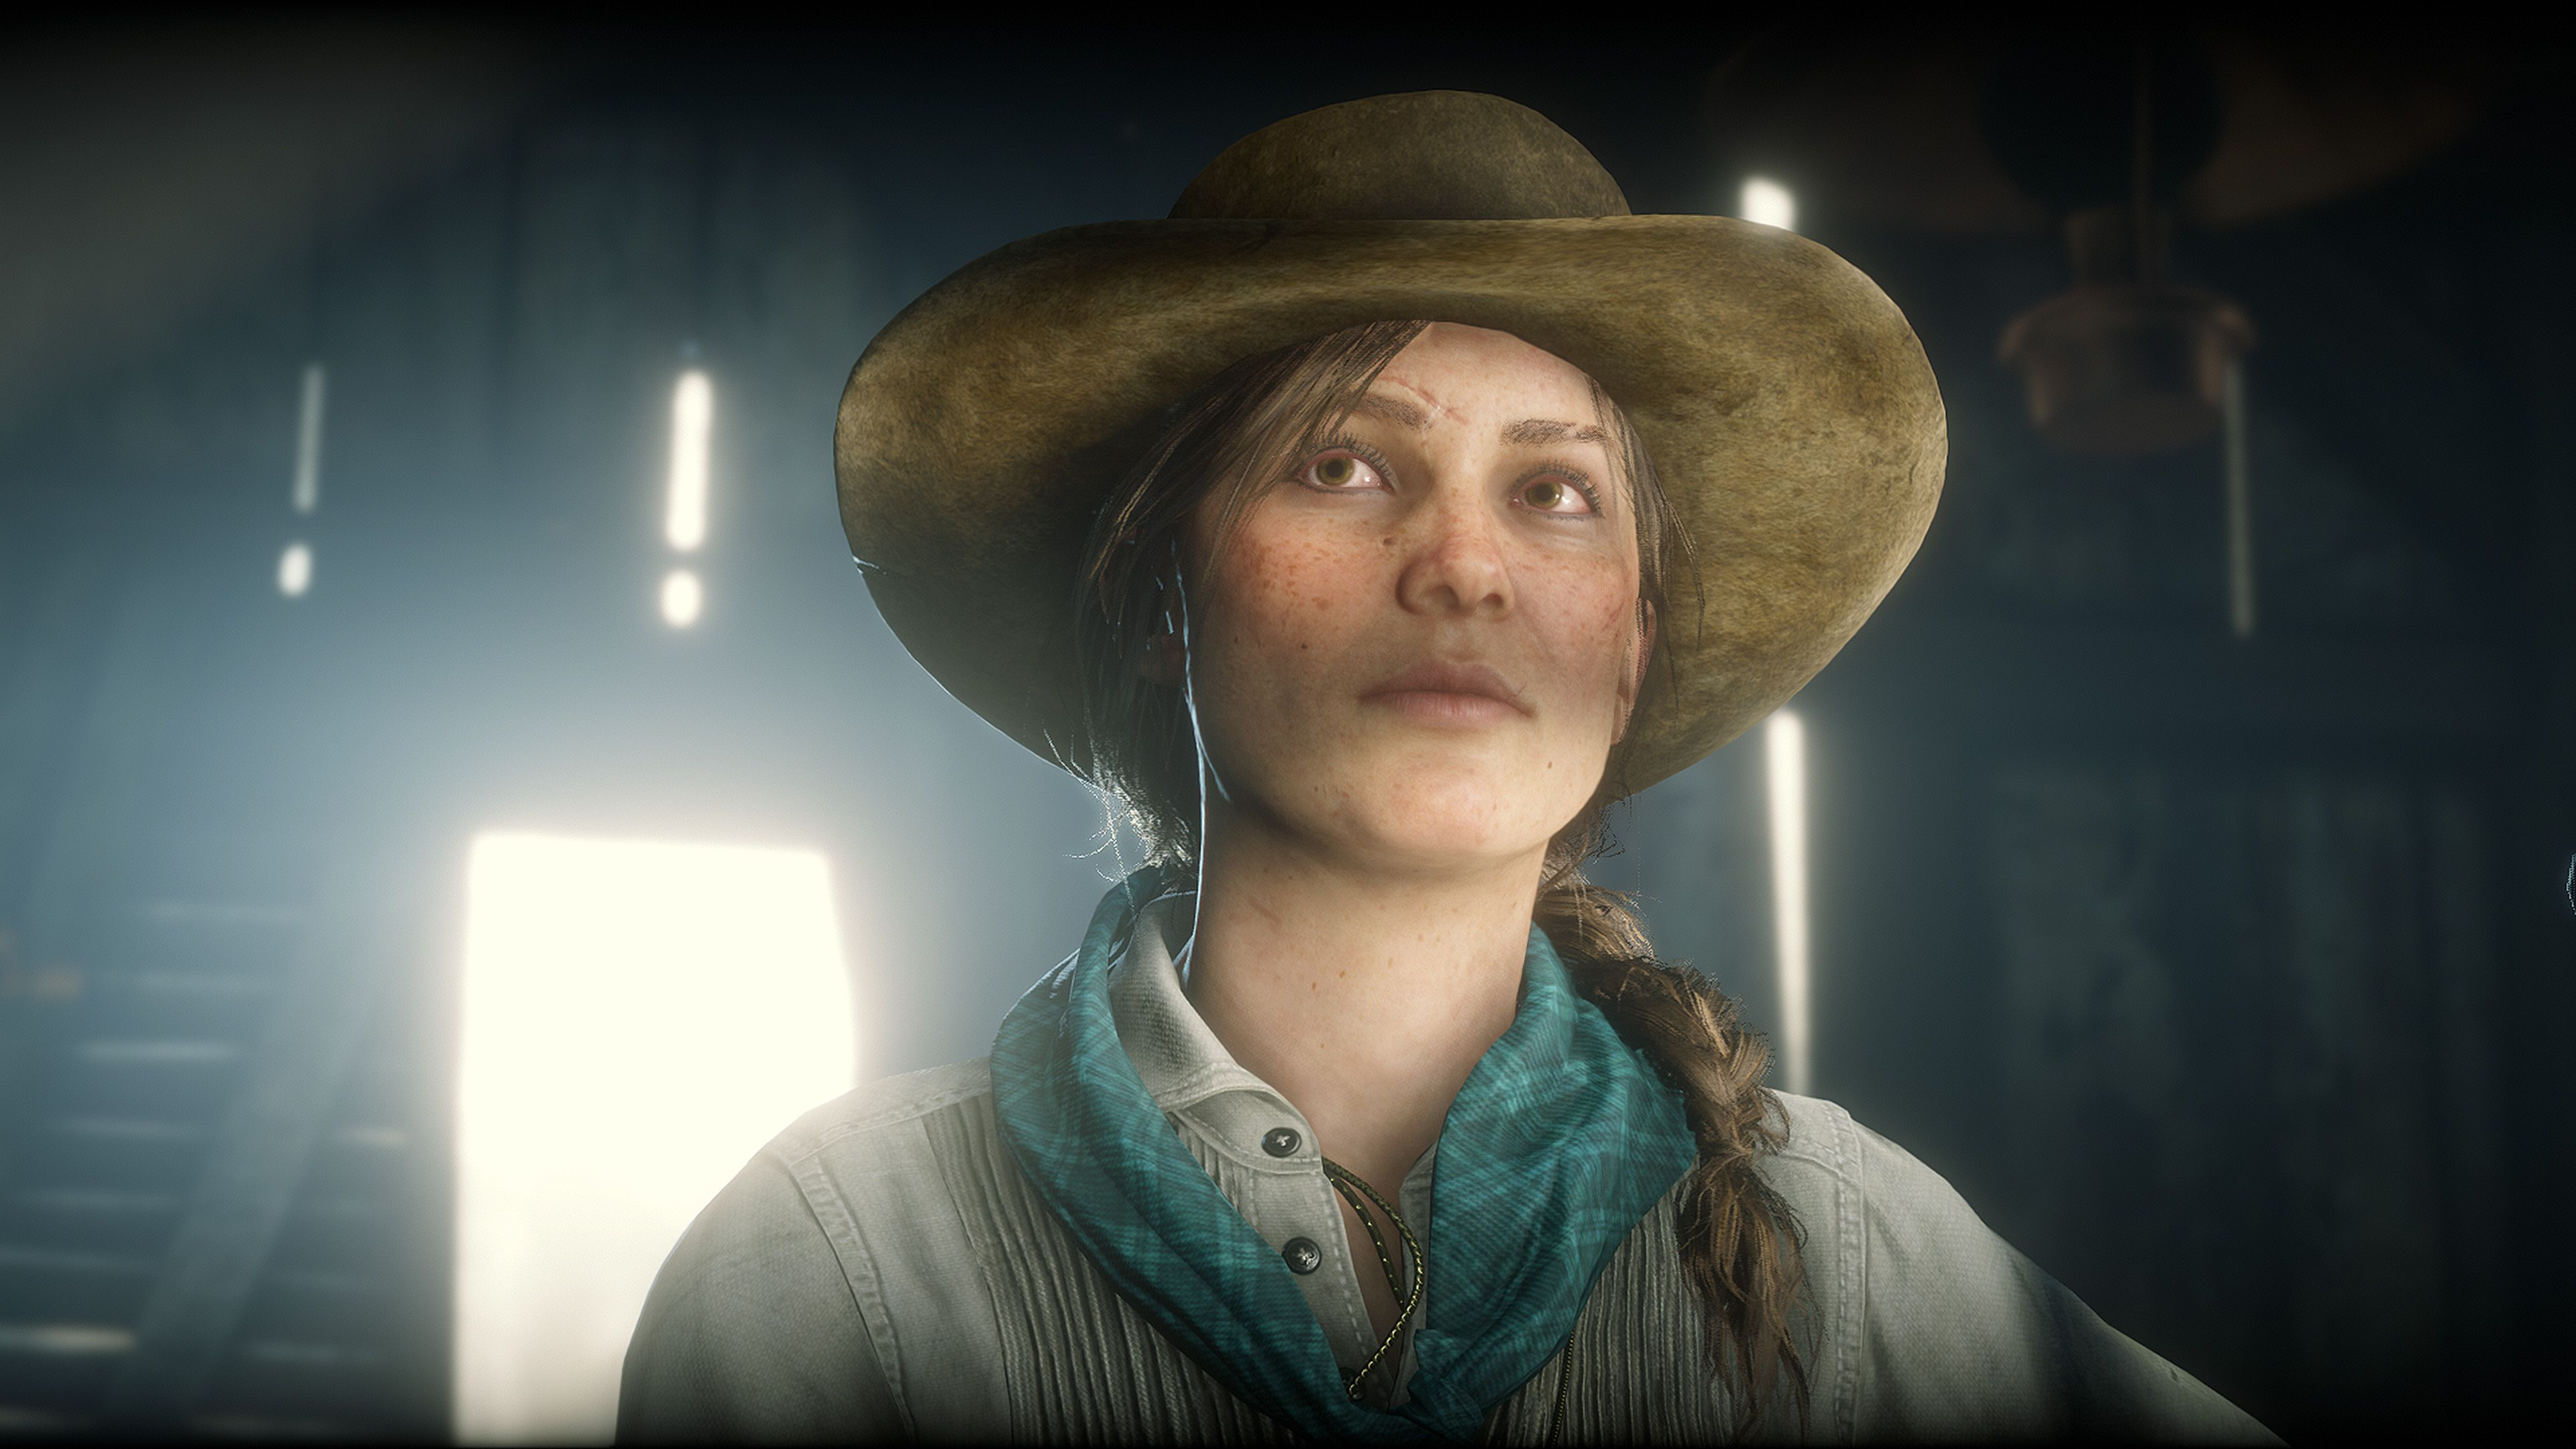 How To Get A Wife In Red Dead Redemption 2